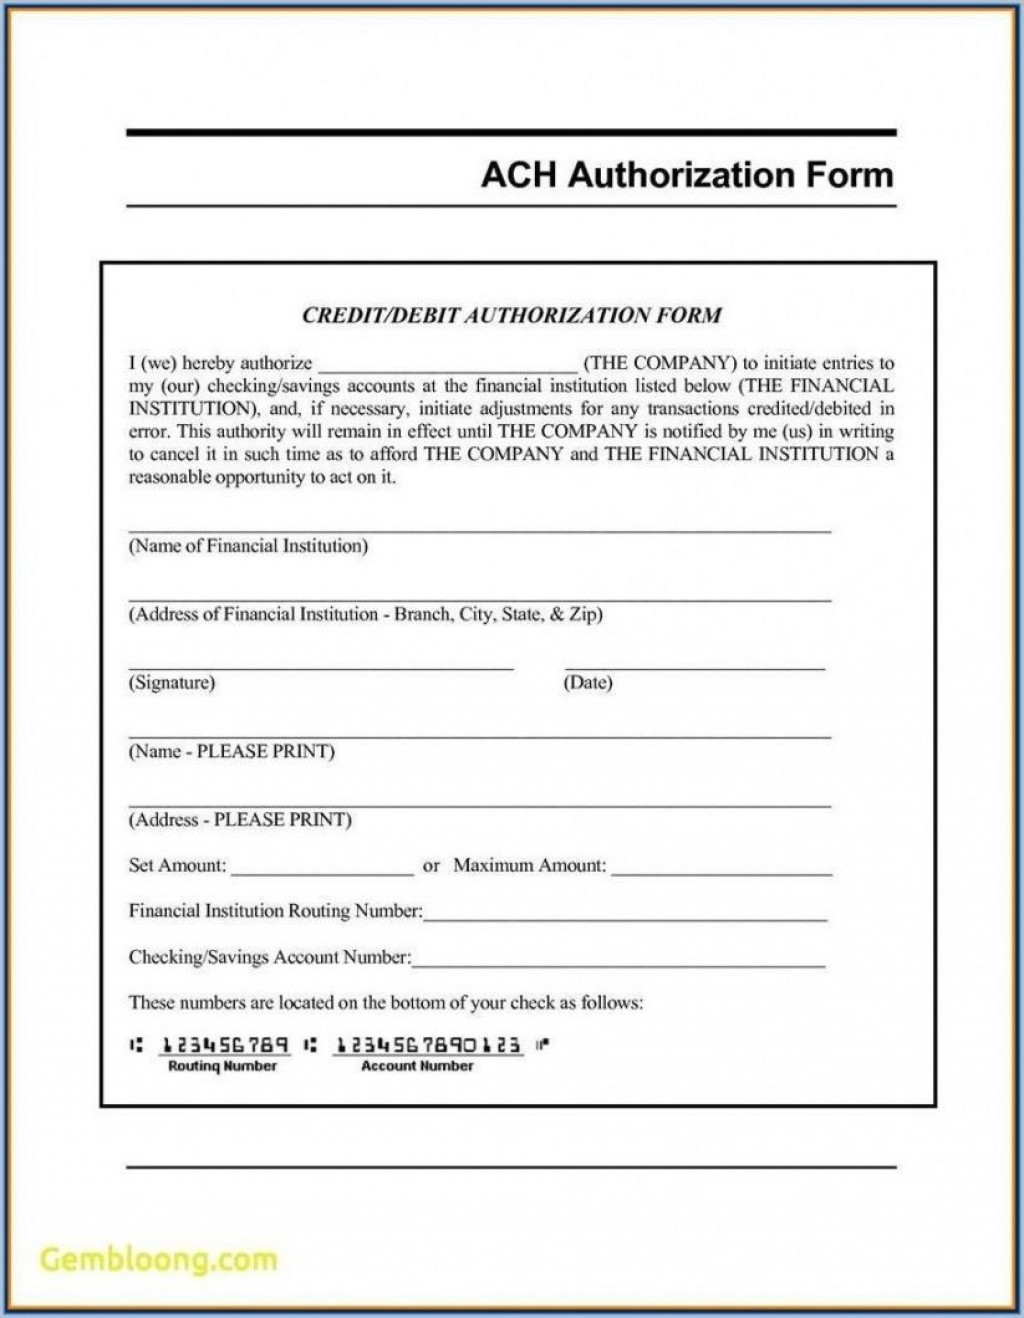 002 Frightening Direct Deposit Agreement Authorization Form Template Image Large